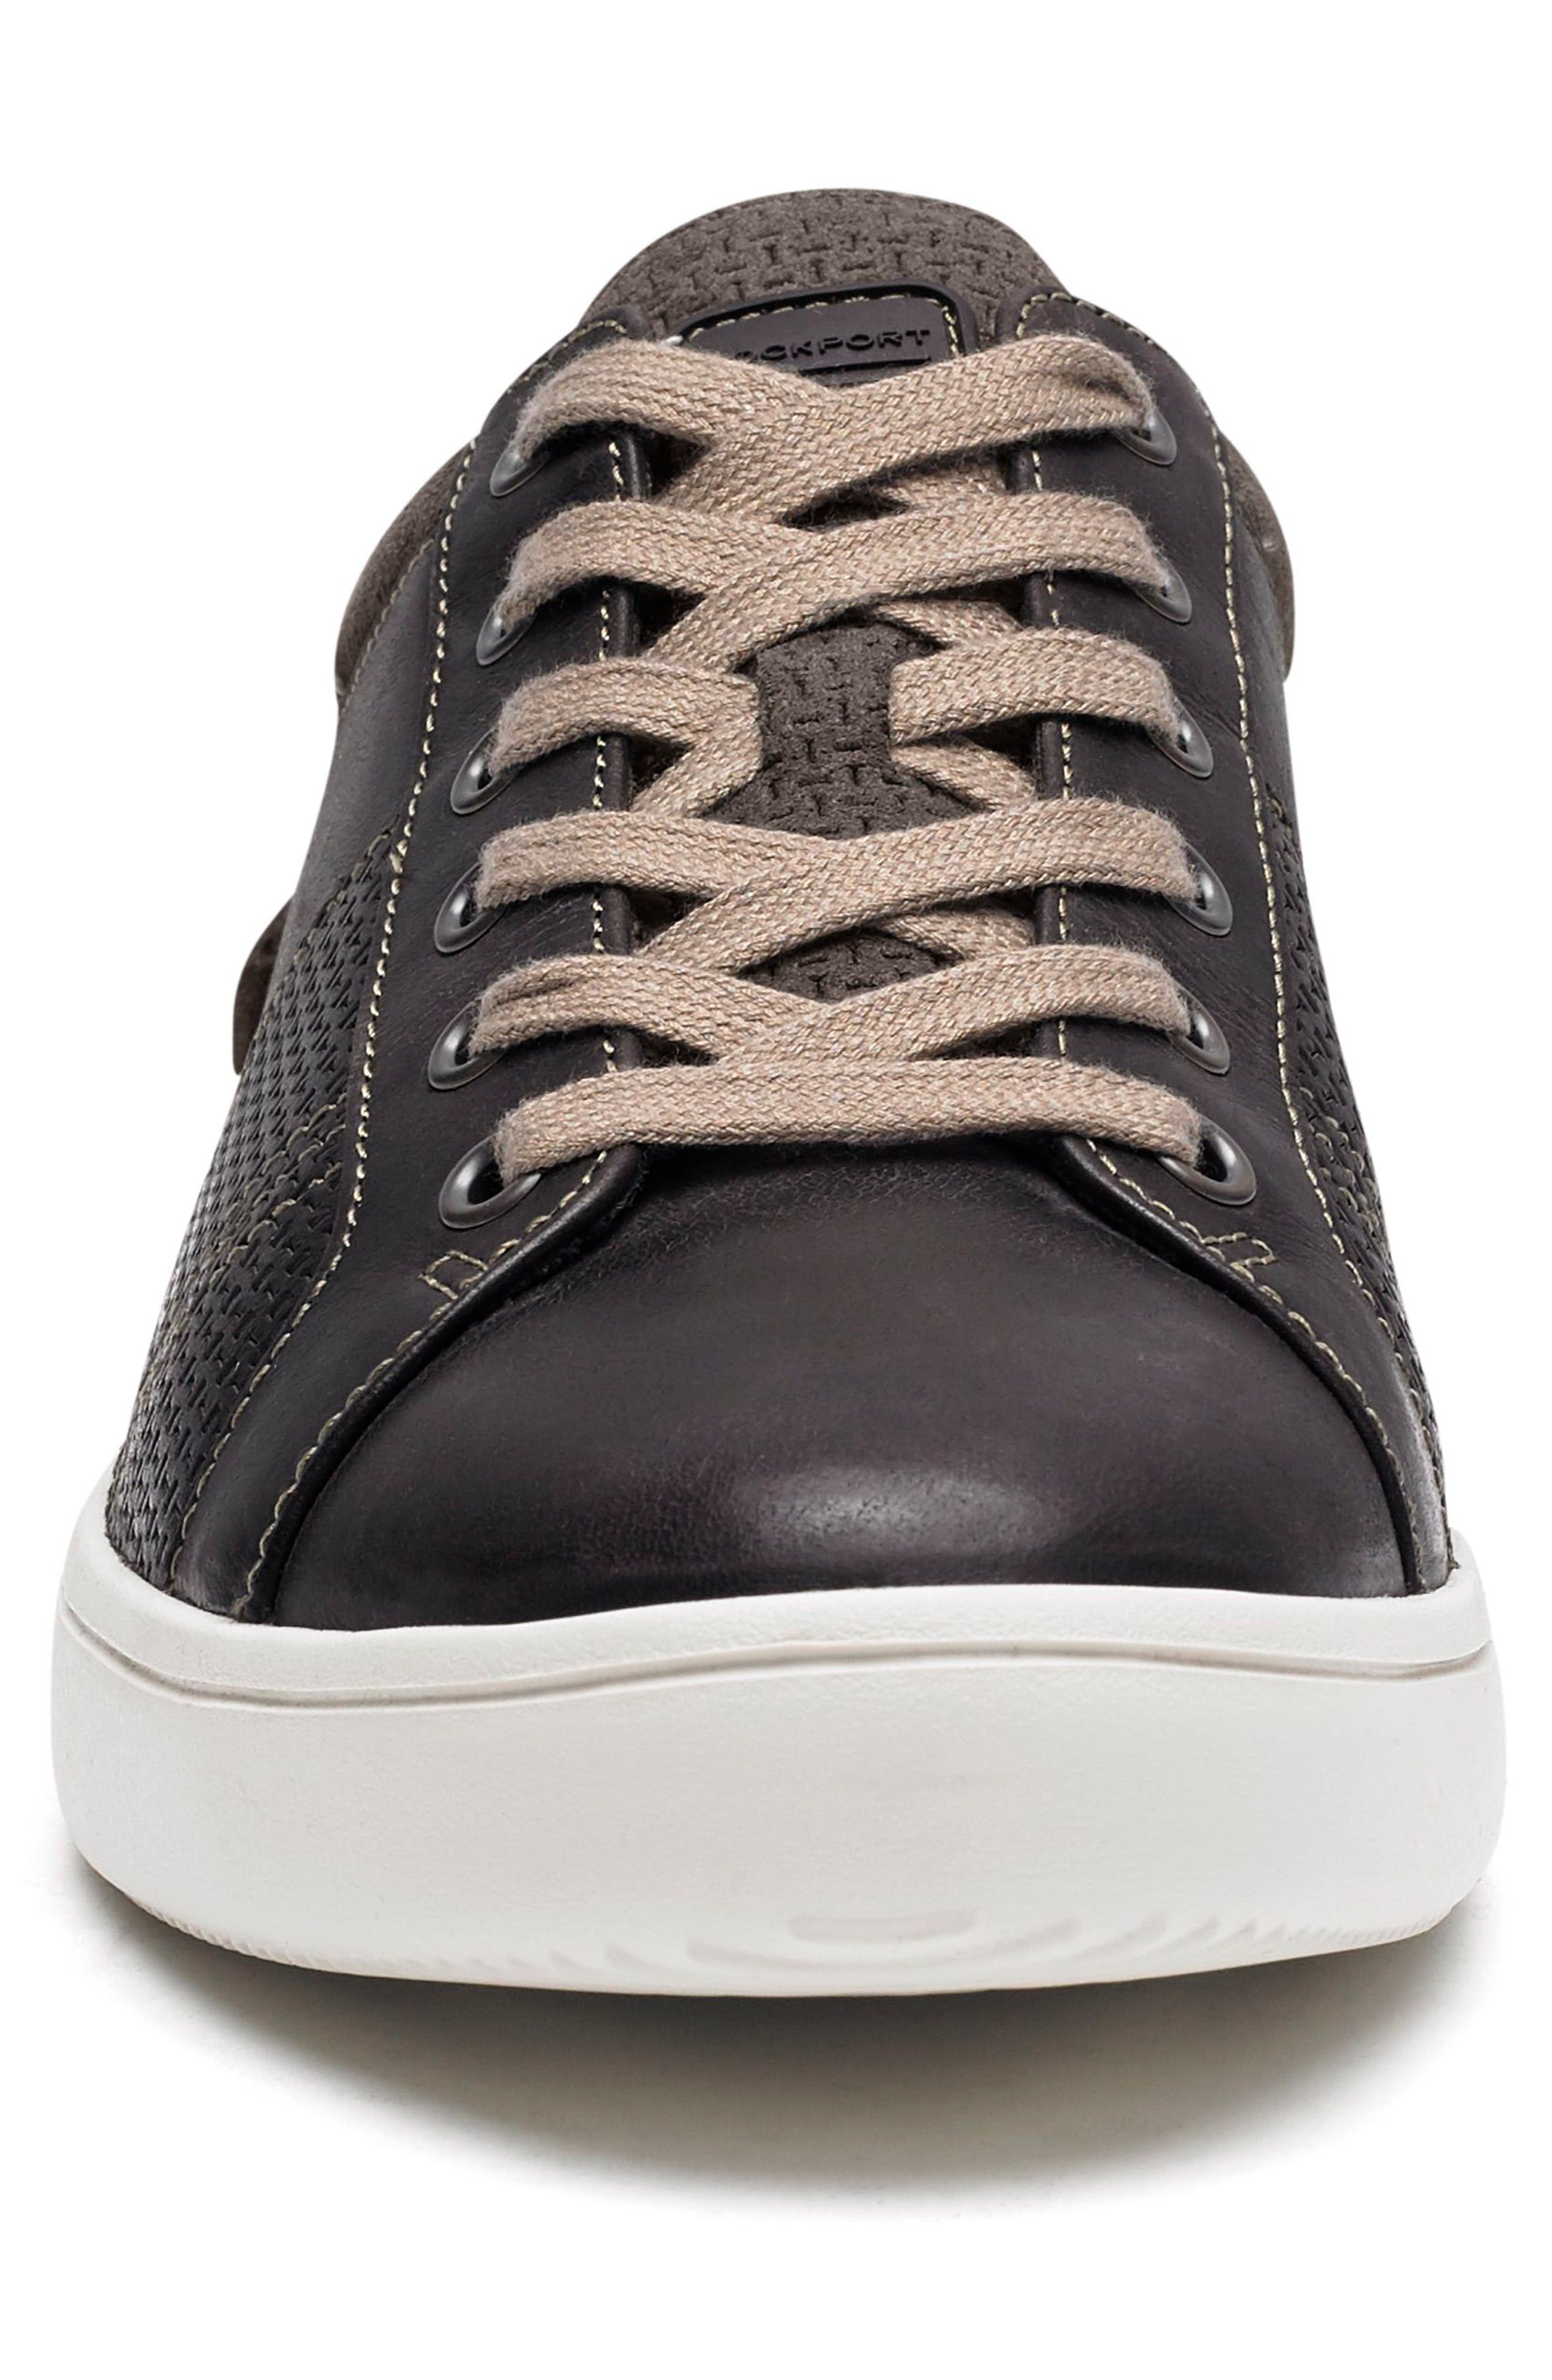 Colle Textured Sneaker,                             Alternate thumbnail 4, color,                             COFFEE LEATHER